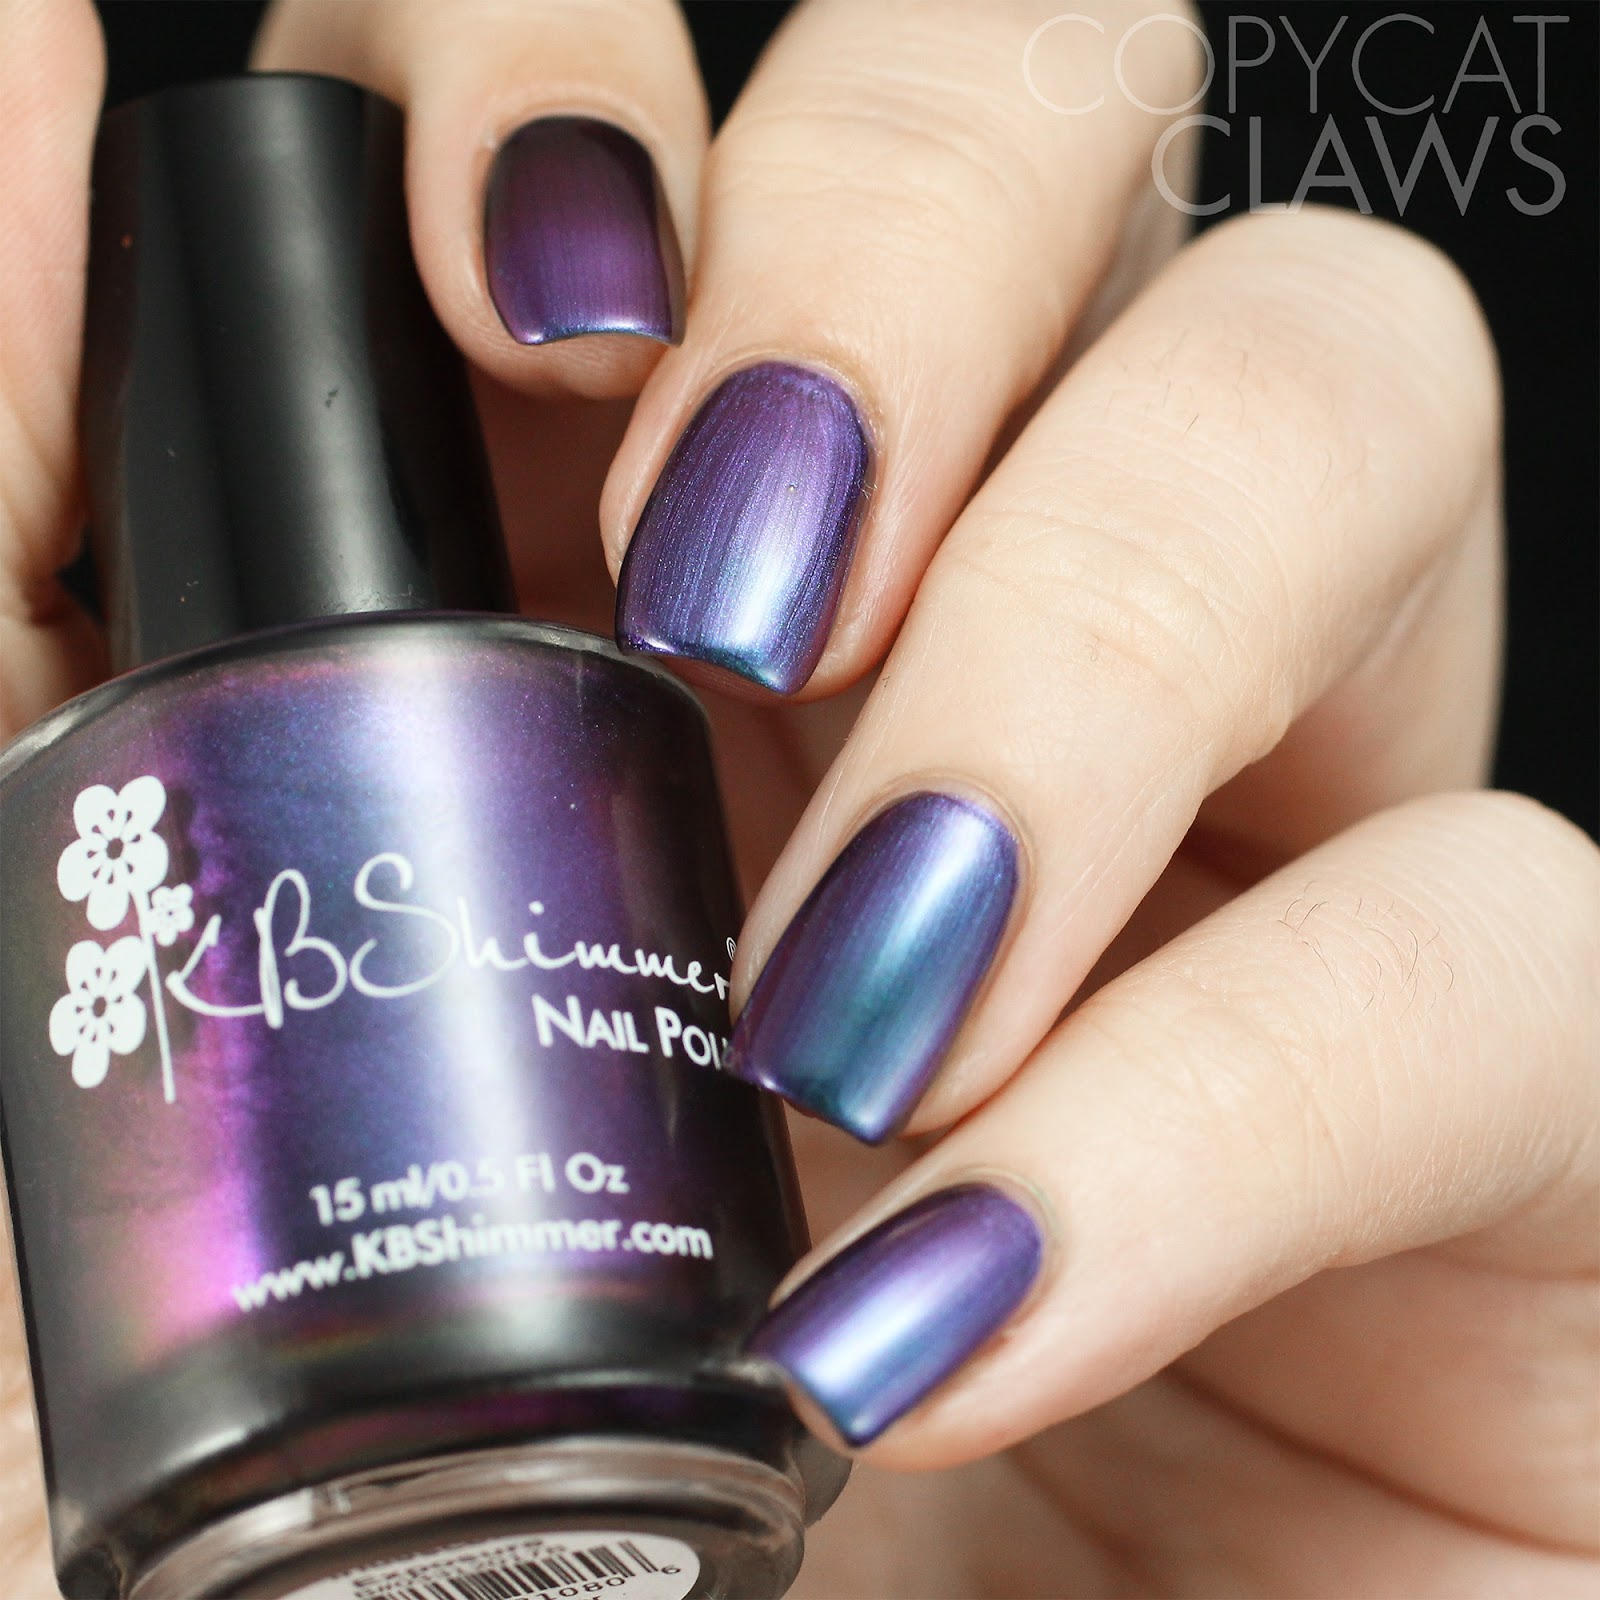 Copycat Claws: KBShimmer Multi Chrome Collection Swatches and Review